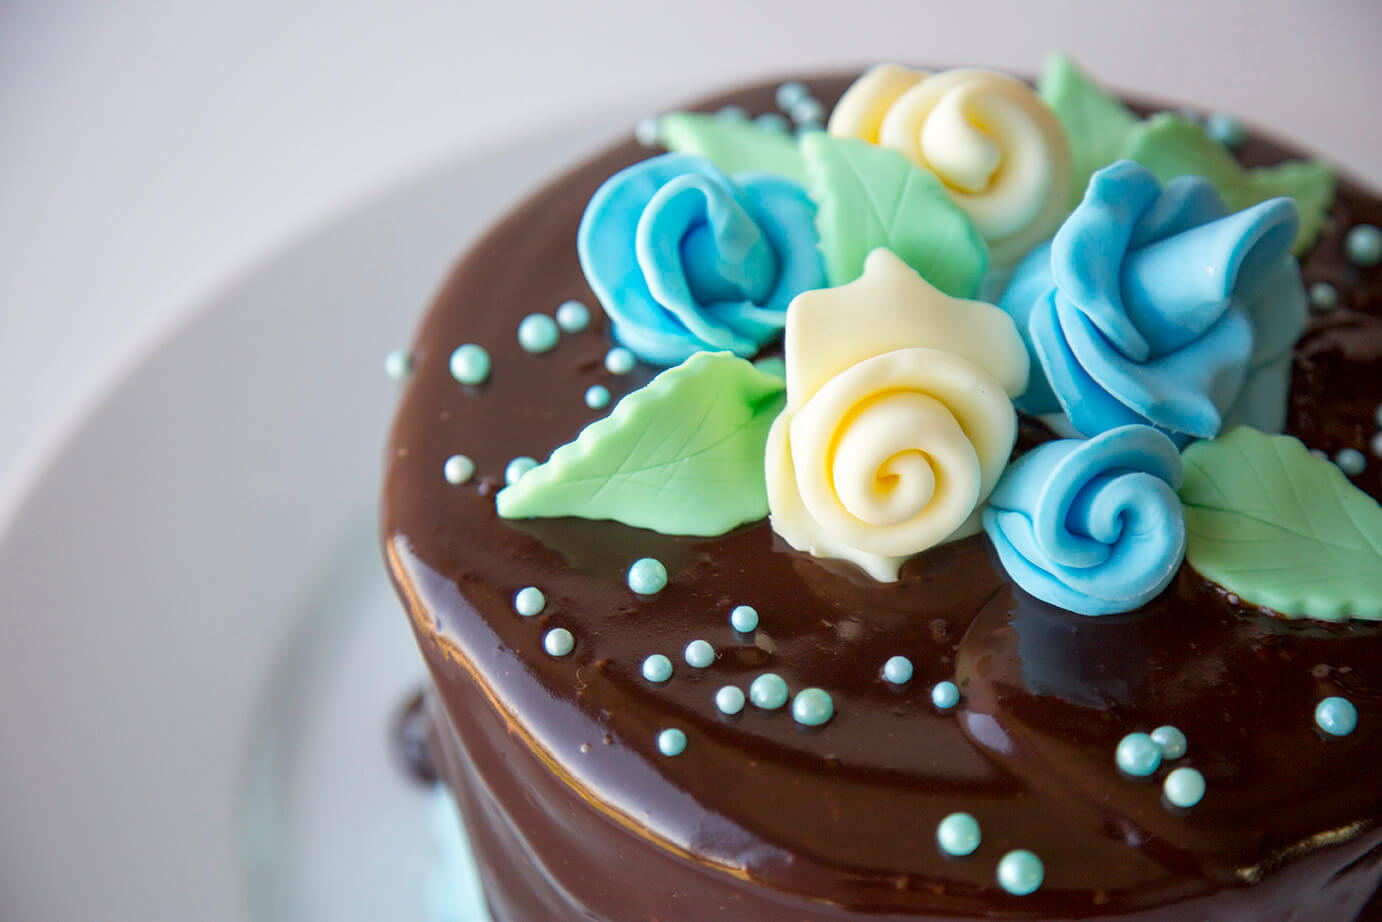 Fondant roses are a great cake decoration.